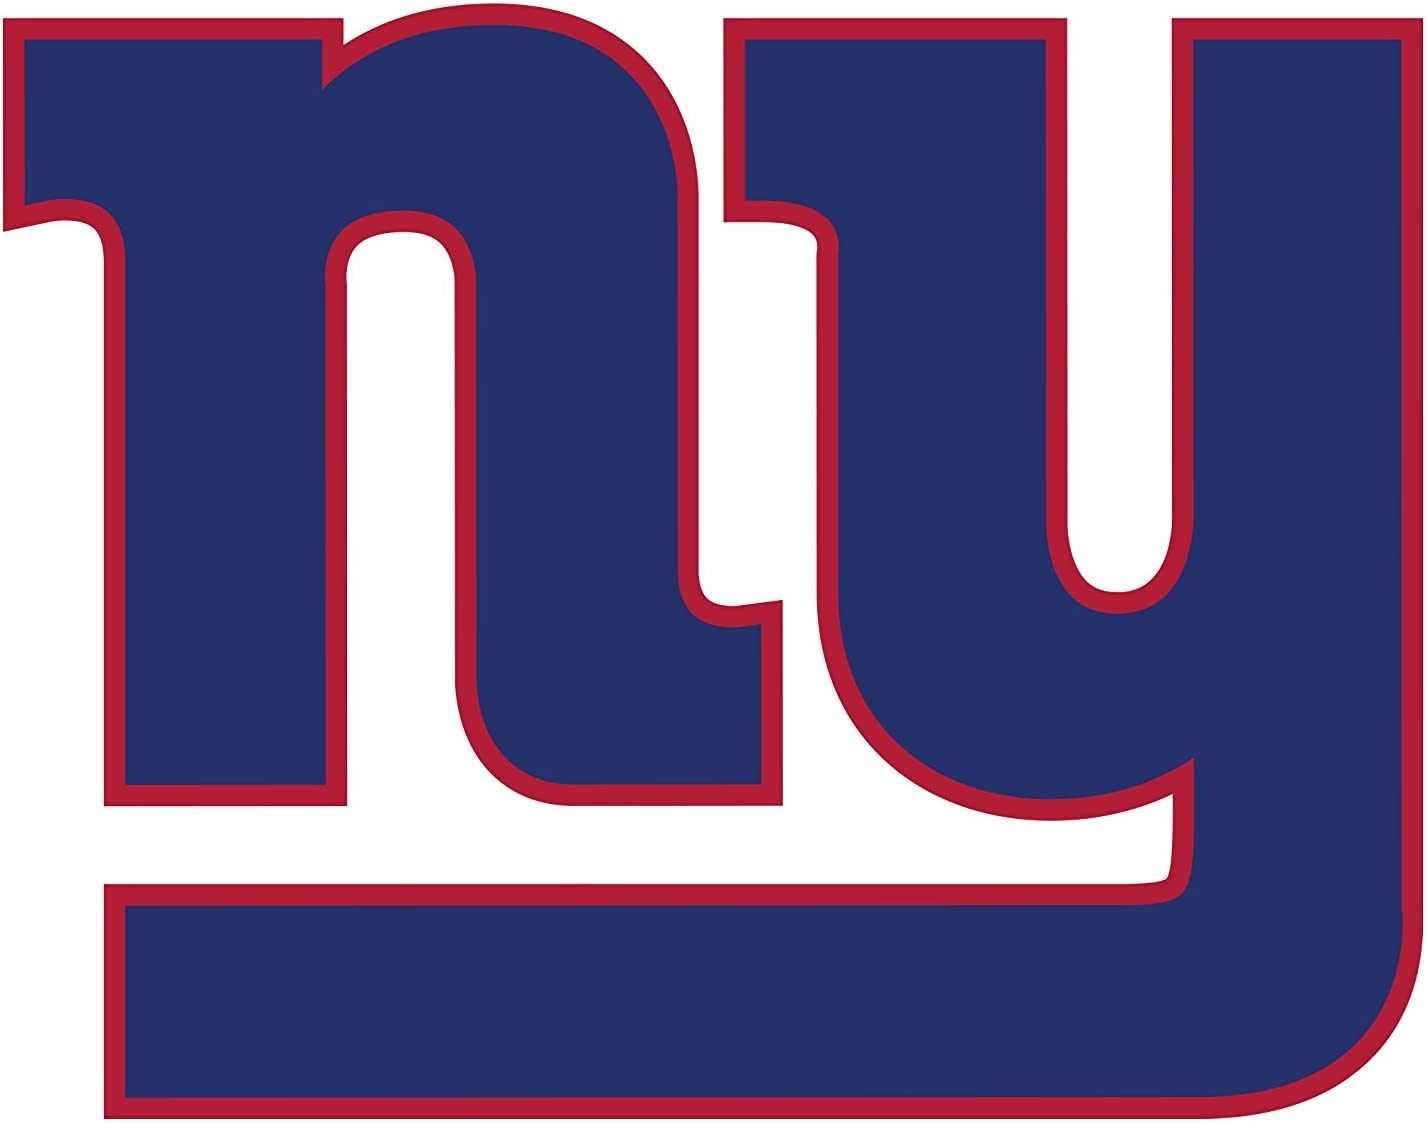 Groovy Ny Giants Nfl Edible Image Photo Sugar Frosting Icing Cake Topper Funny Birthday Cards Online Inifodamsfinfo